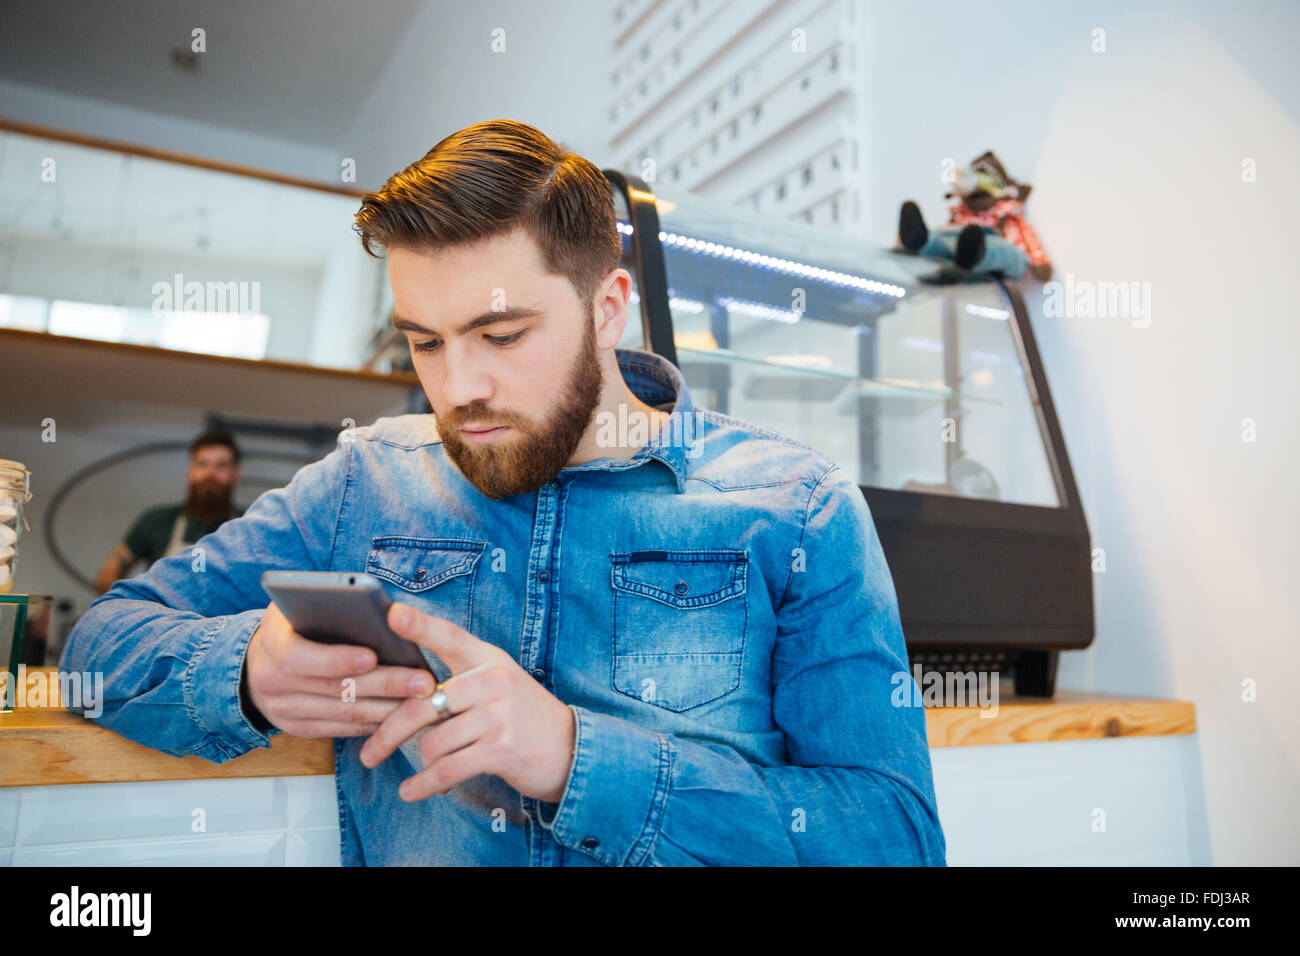 Handsome young man using smartphone in cafe Stock Photo